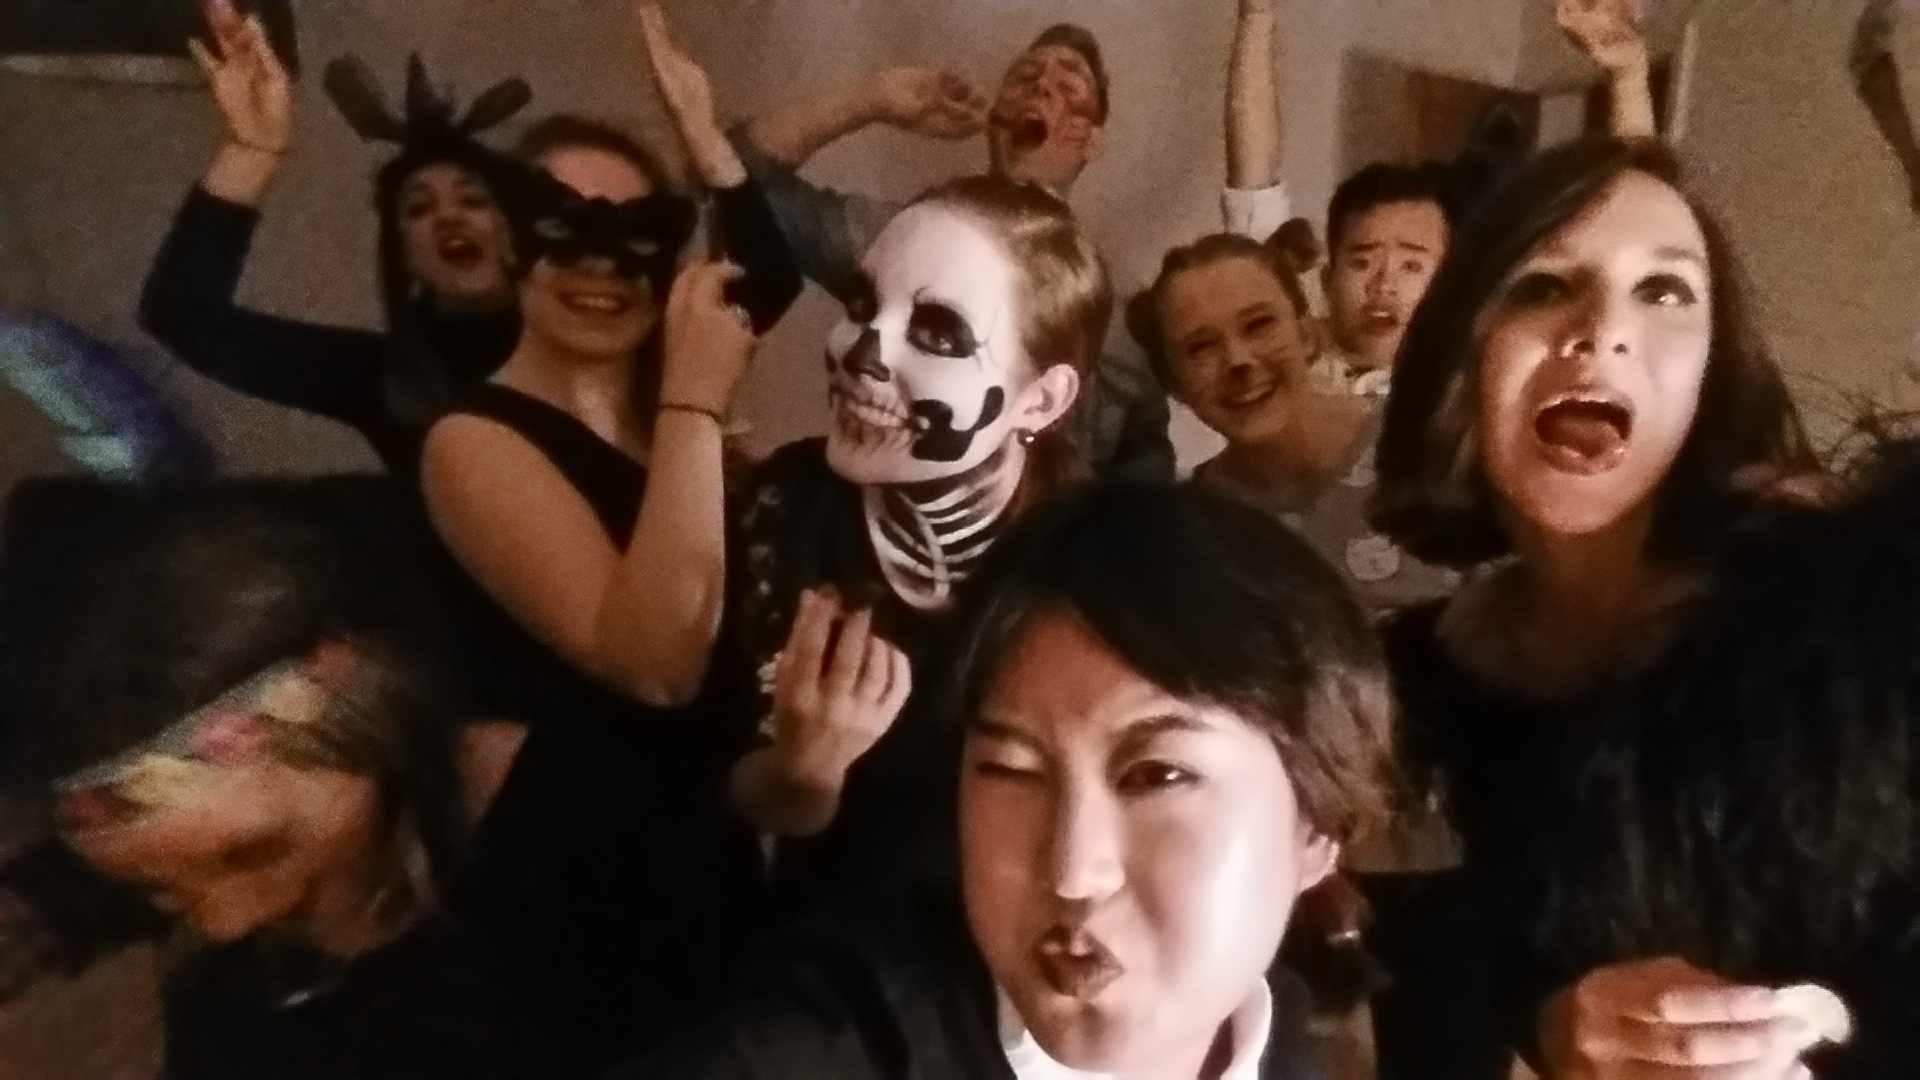 Dänemark Update #9: Halloween & co - 2015 10 31 22.03.28